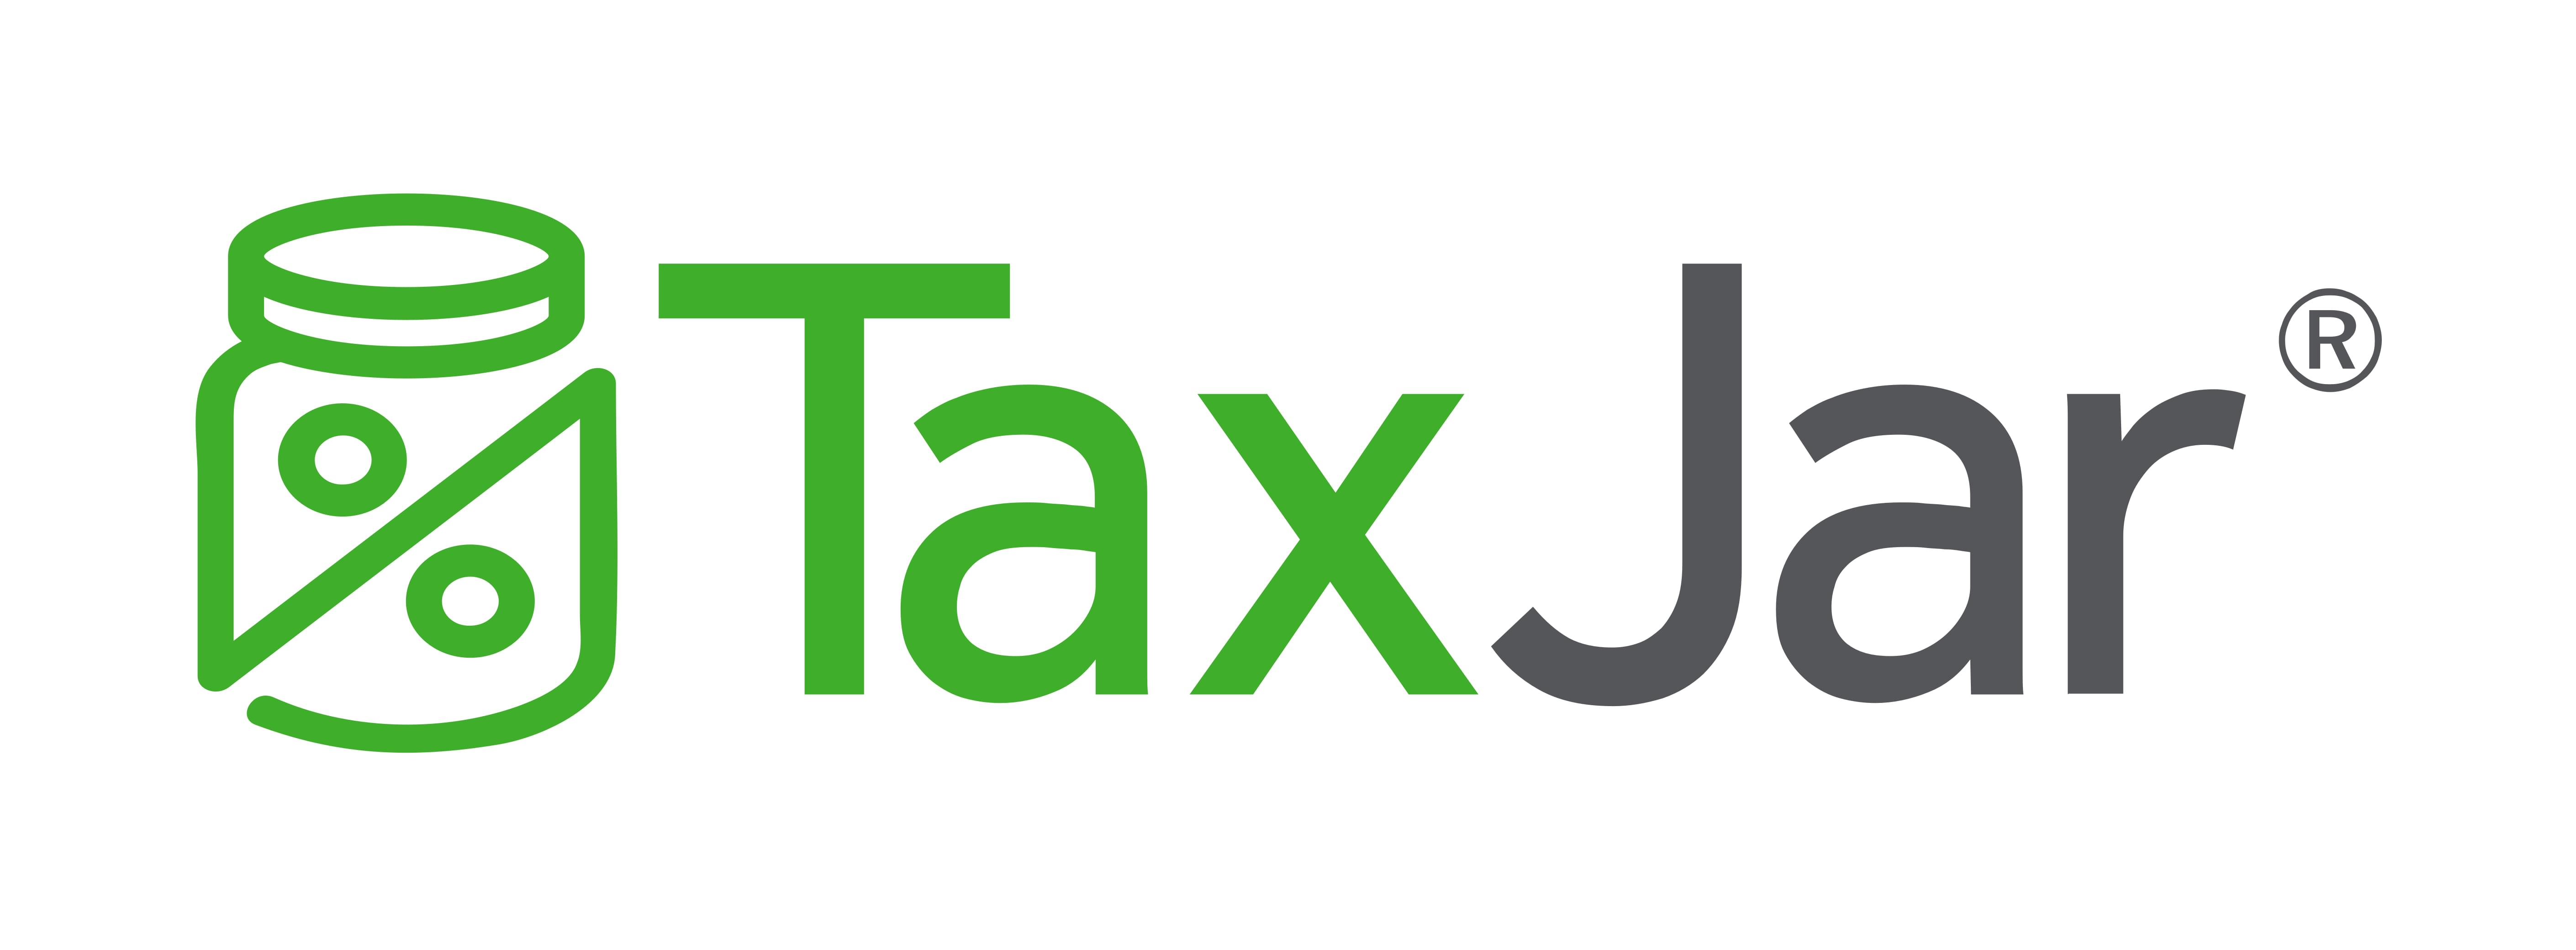 TaxJar - 2018 Amazon Software Tool Promo Code